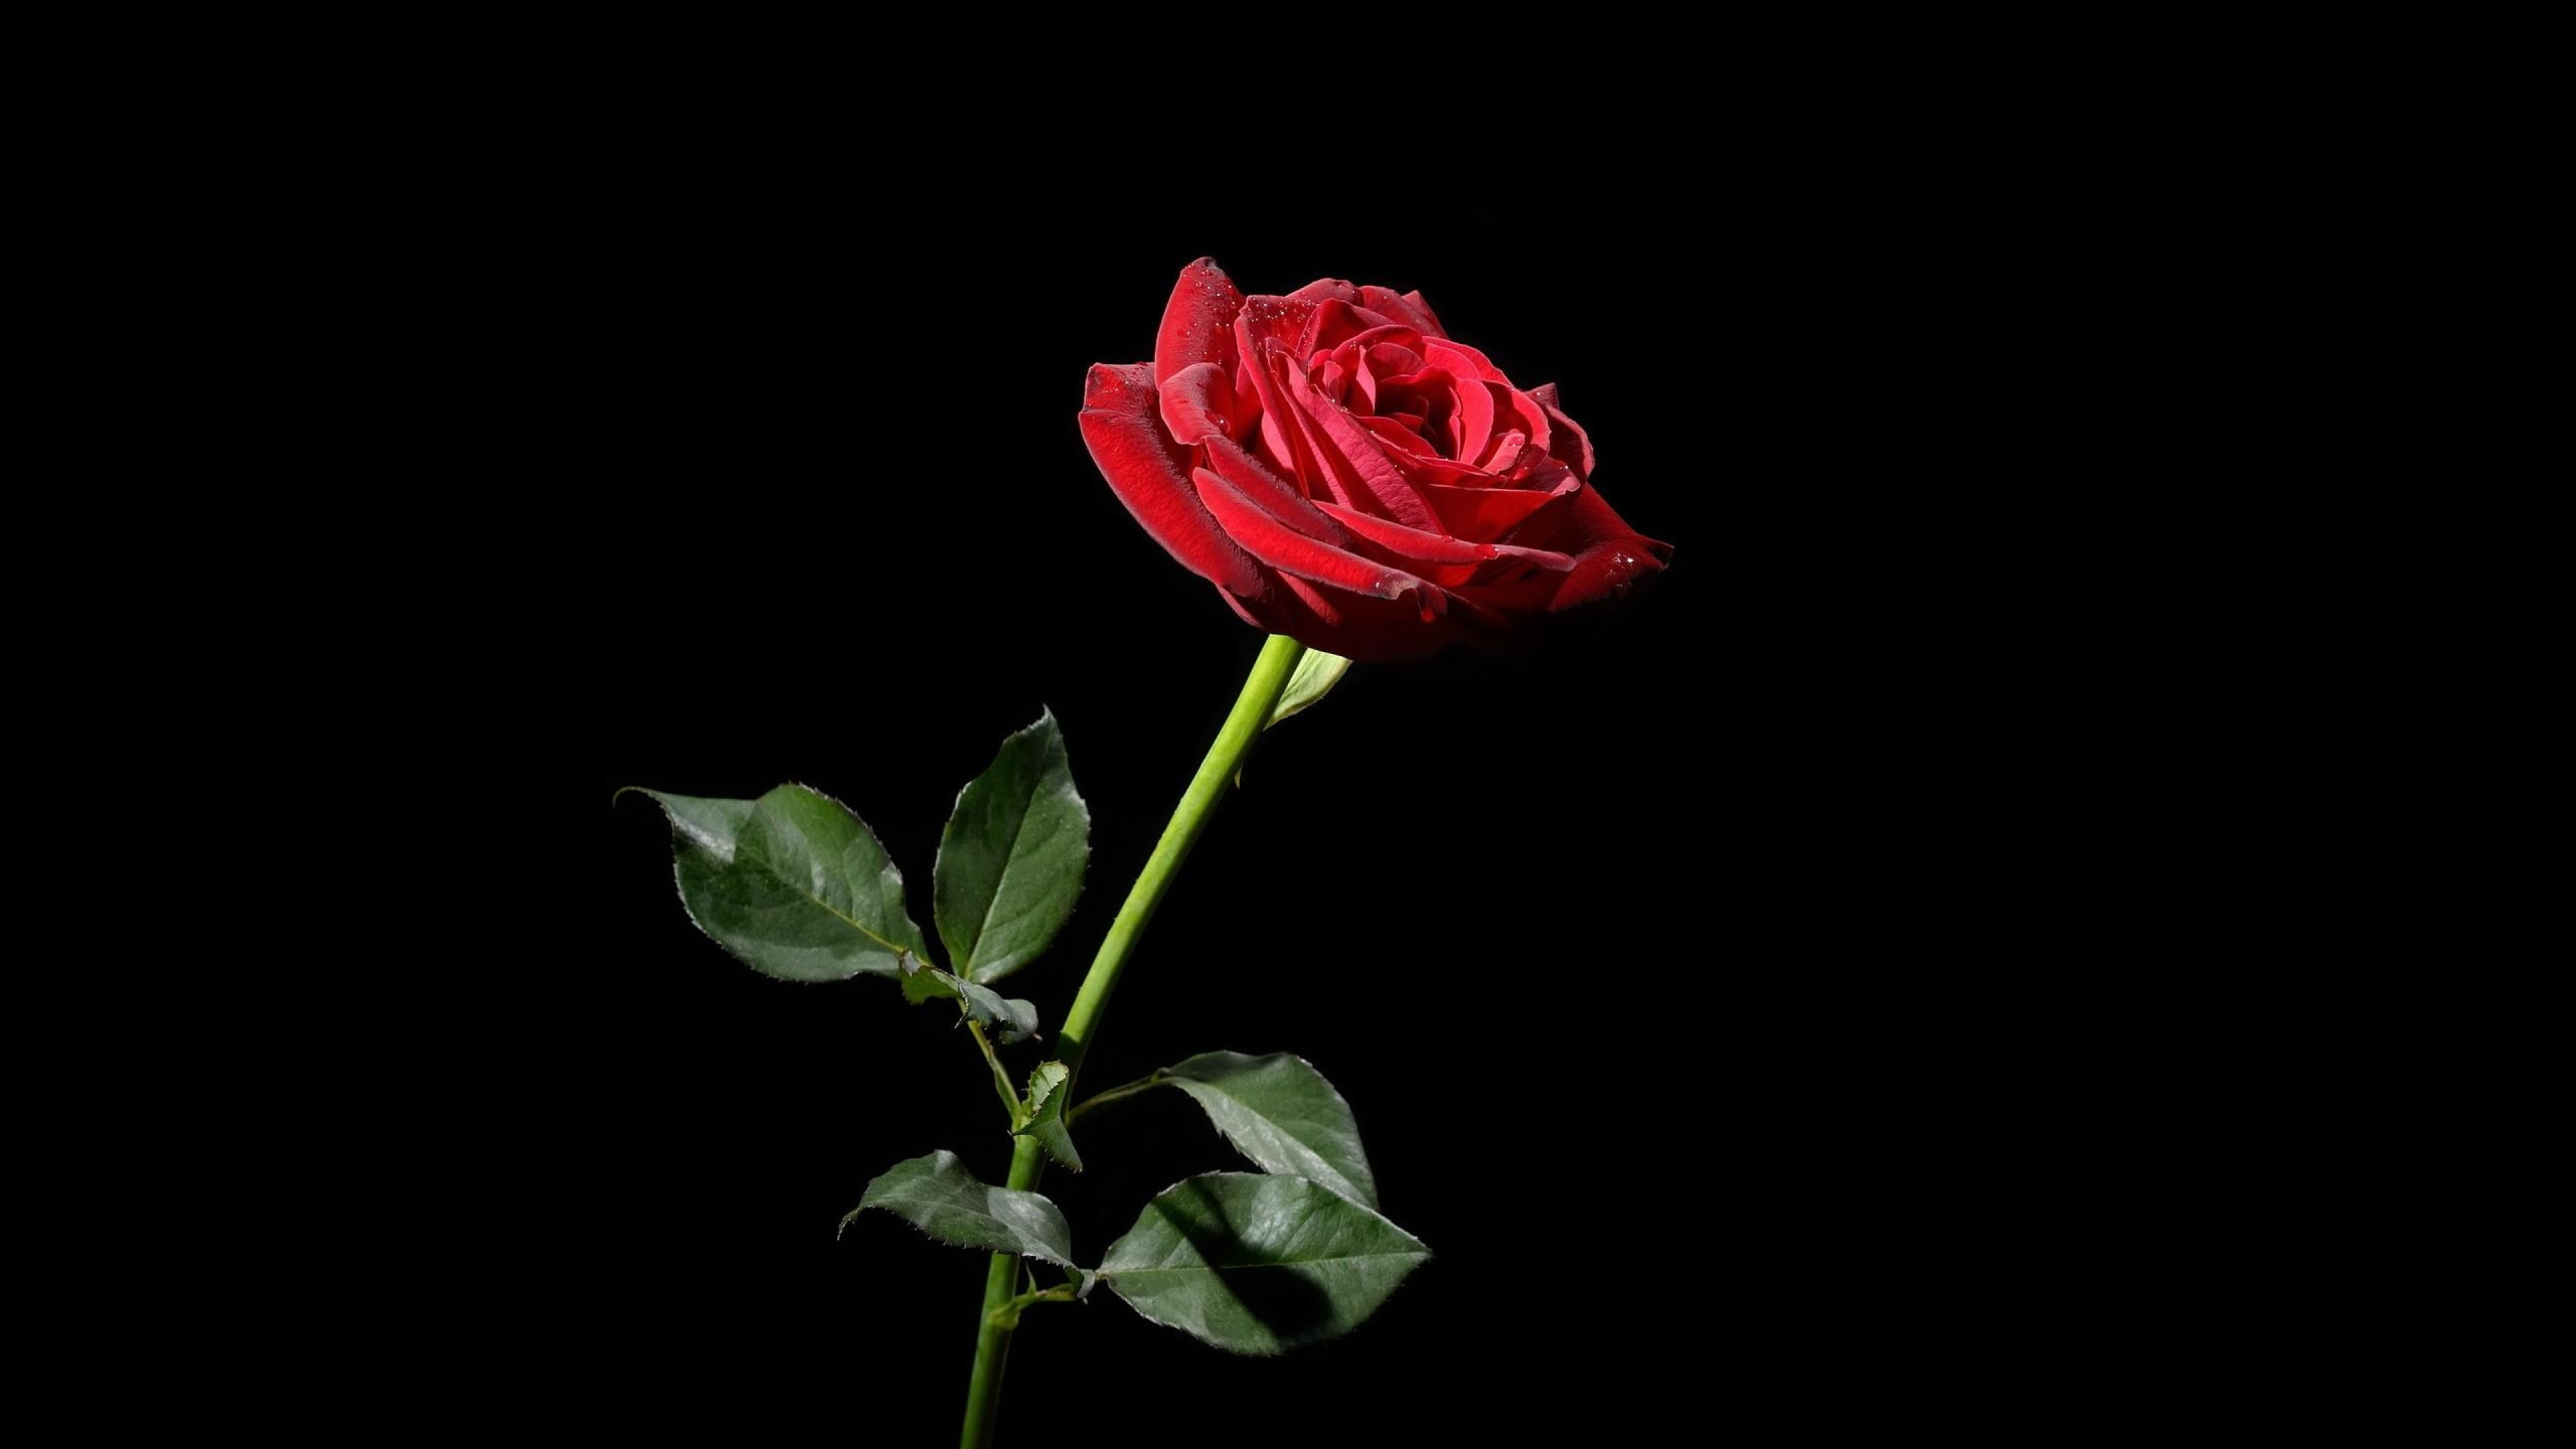 Rose Red Flower Black background Wallpaper Background 4K Ultra HD 3840x2160